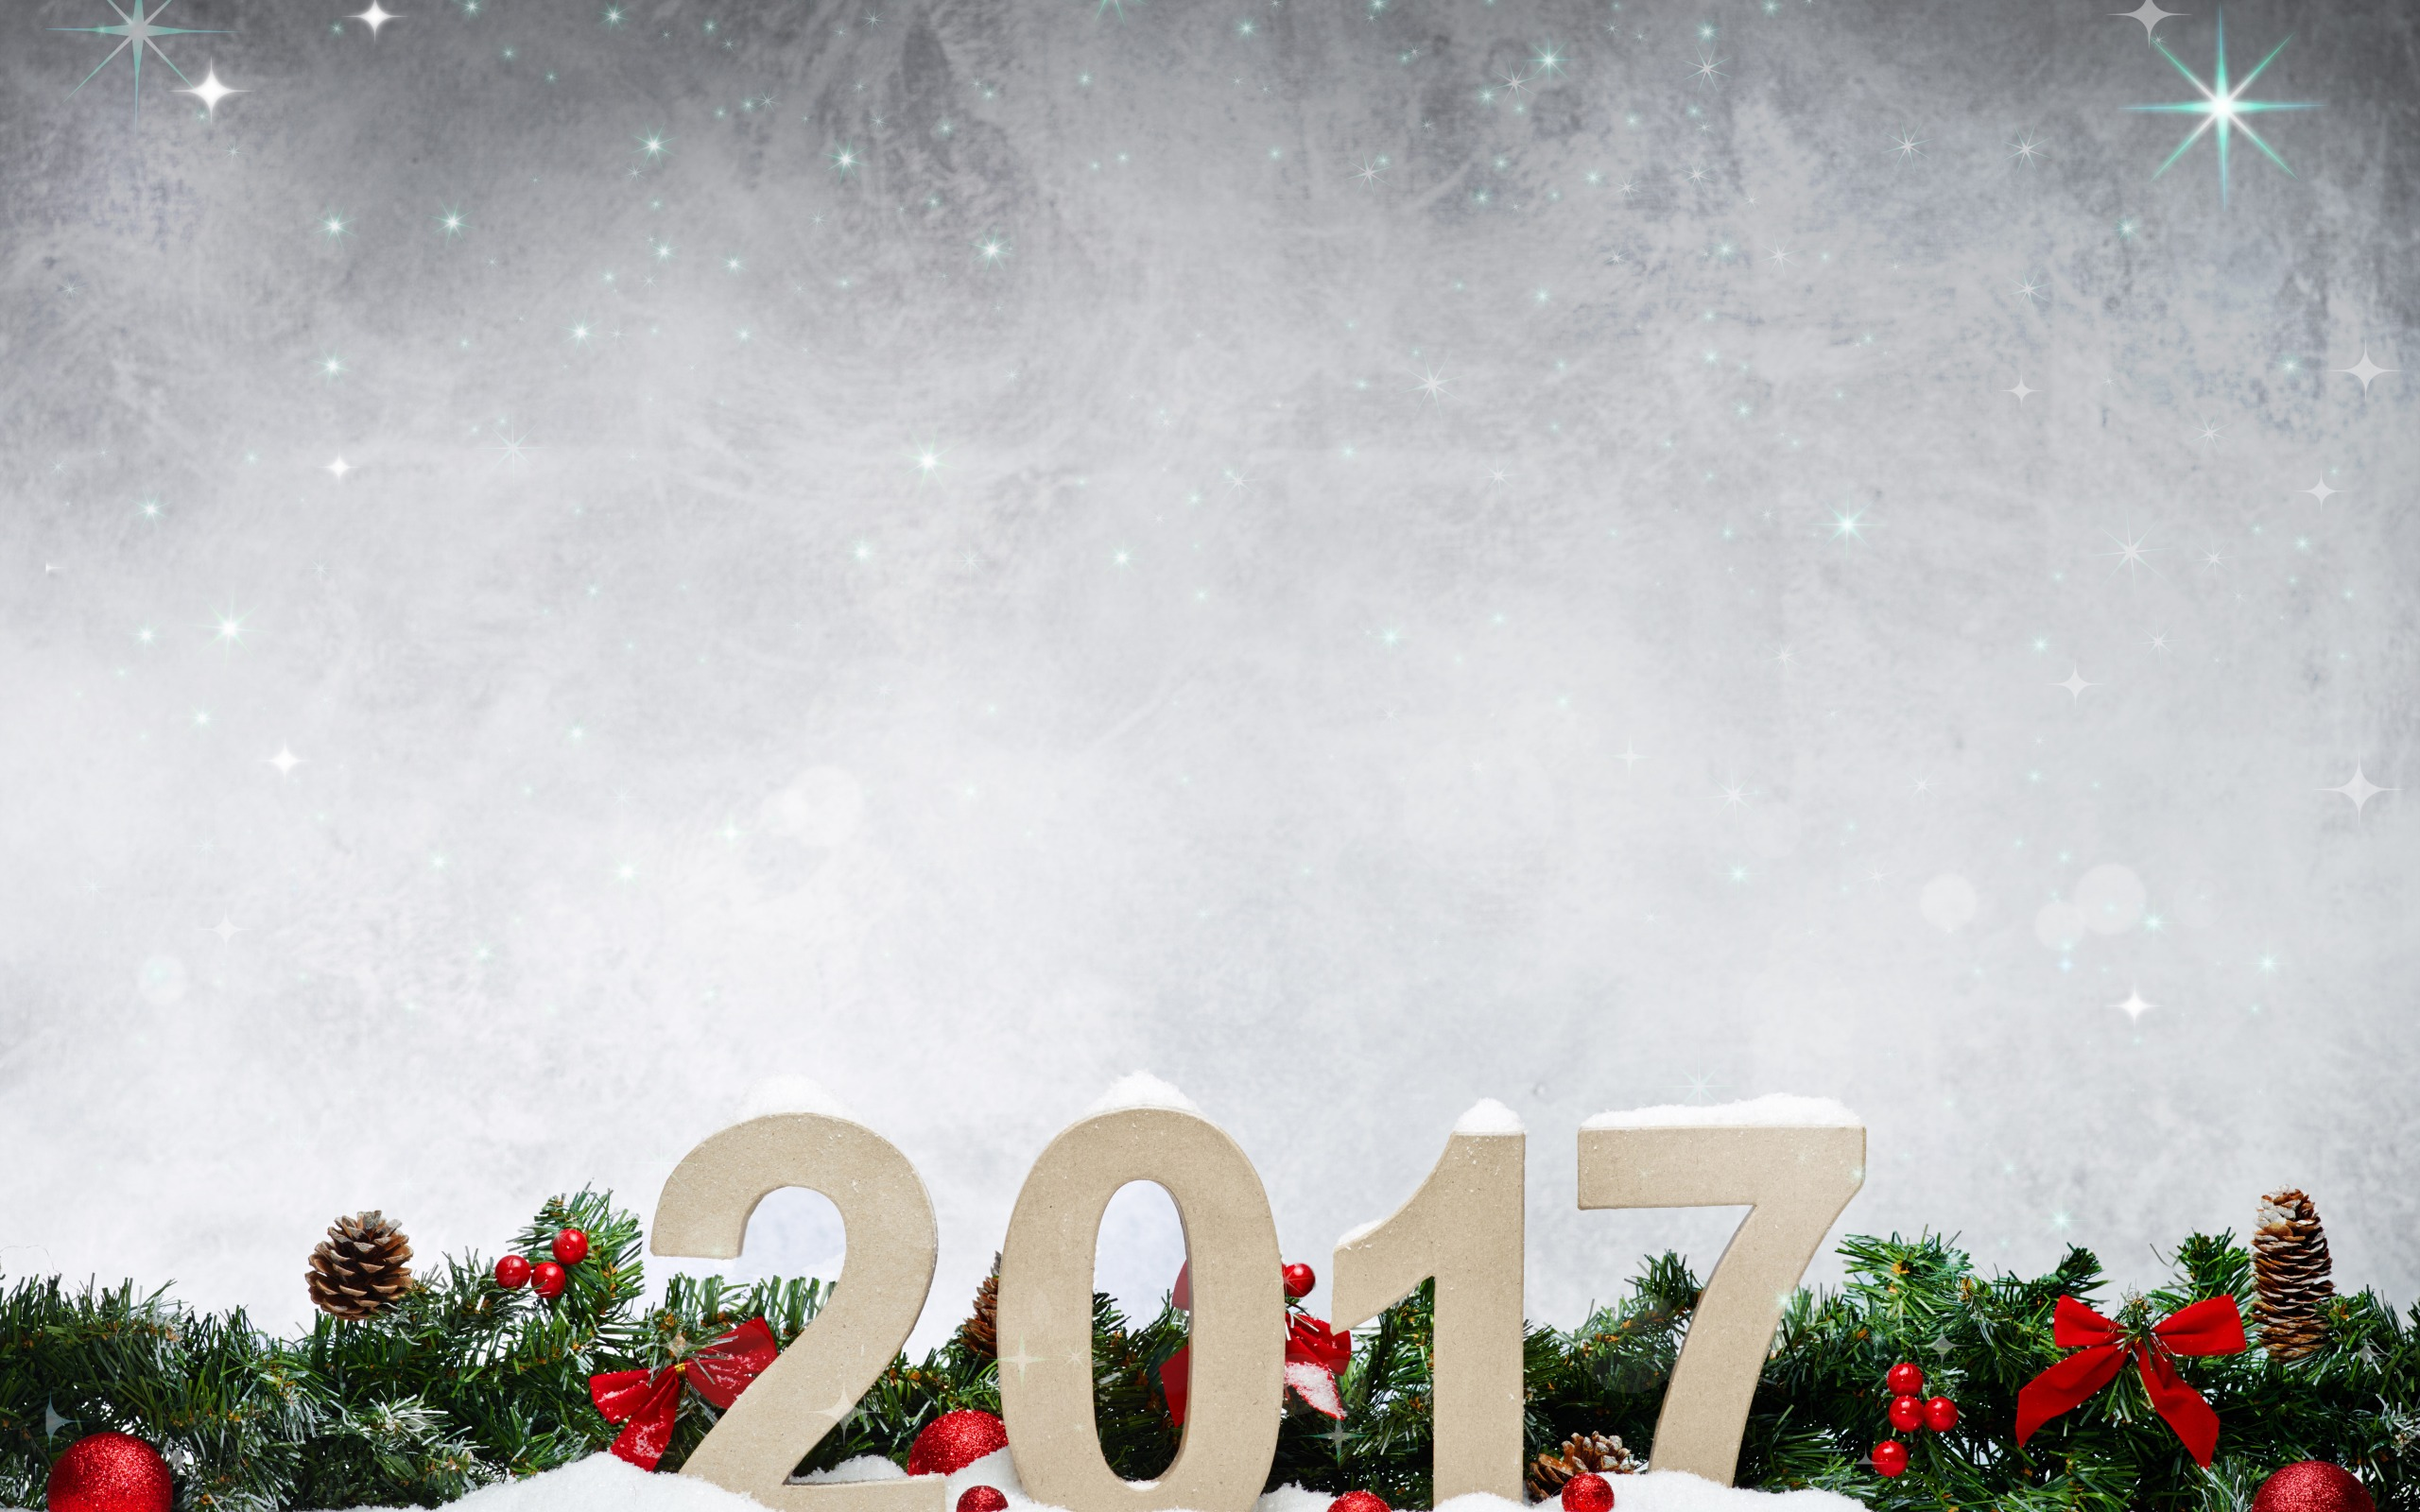 Merry Christmas And Happy New Year 2017 Wallpaper - Christmas Tree - HD Wallpaper